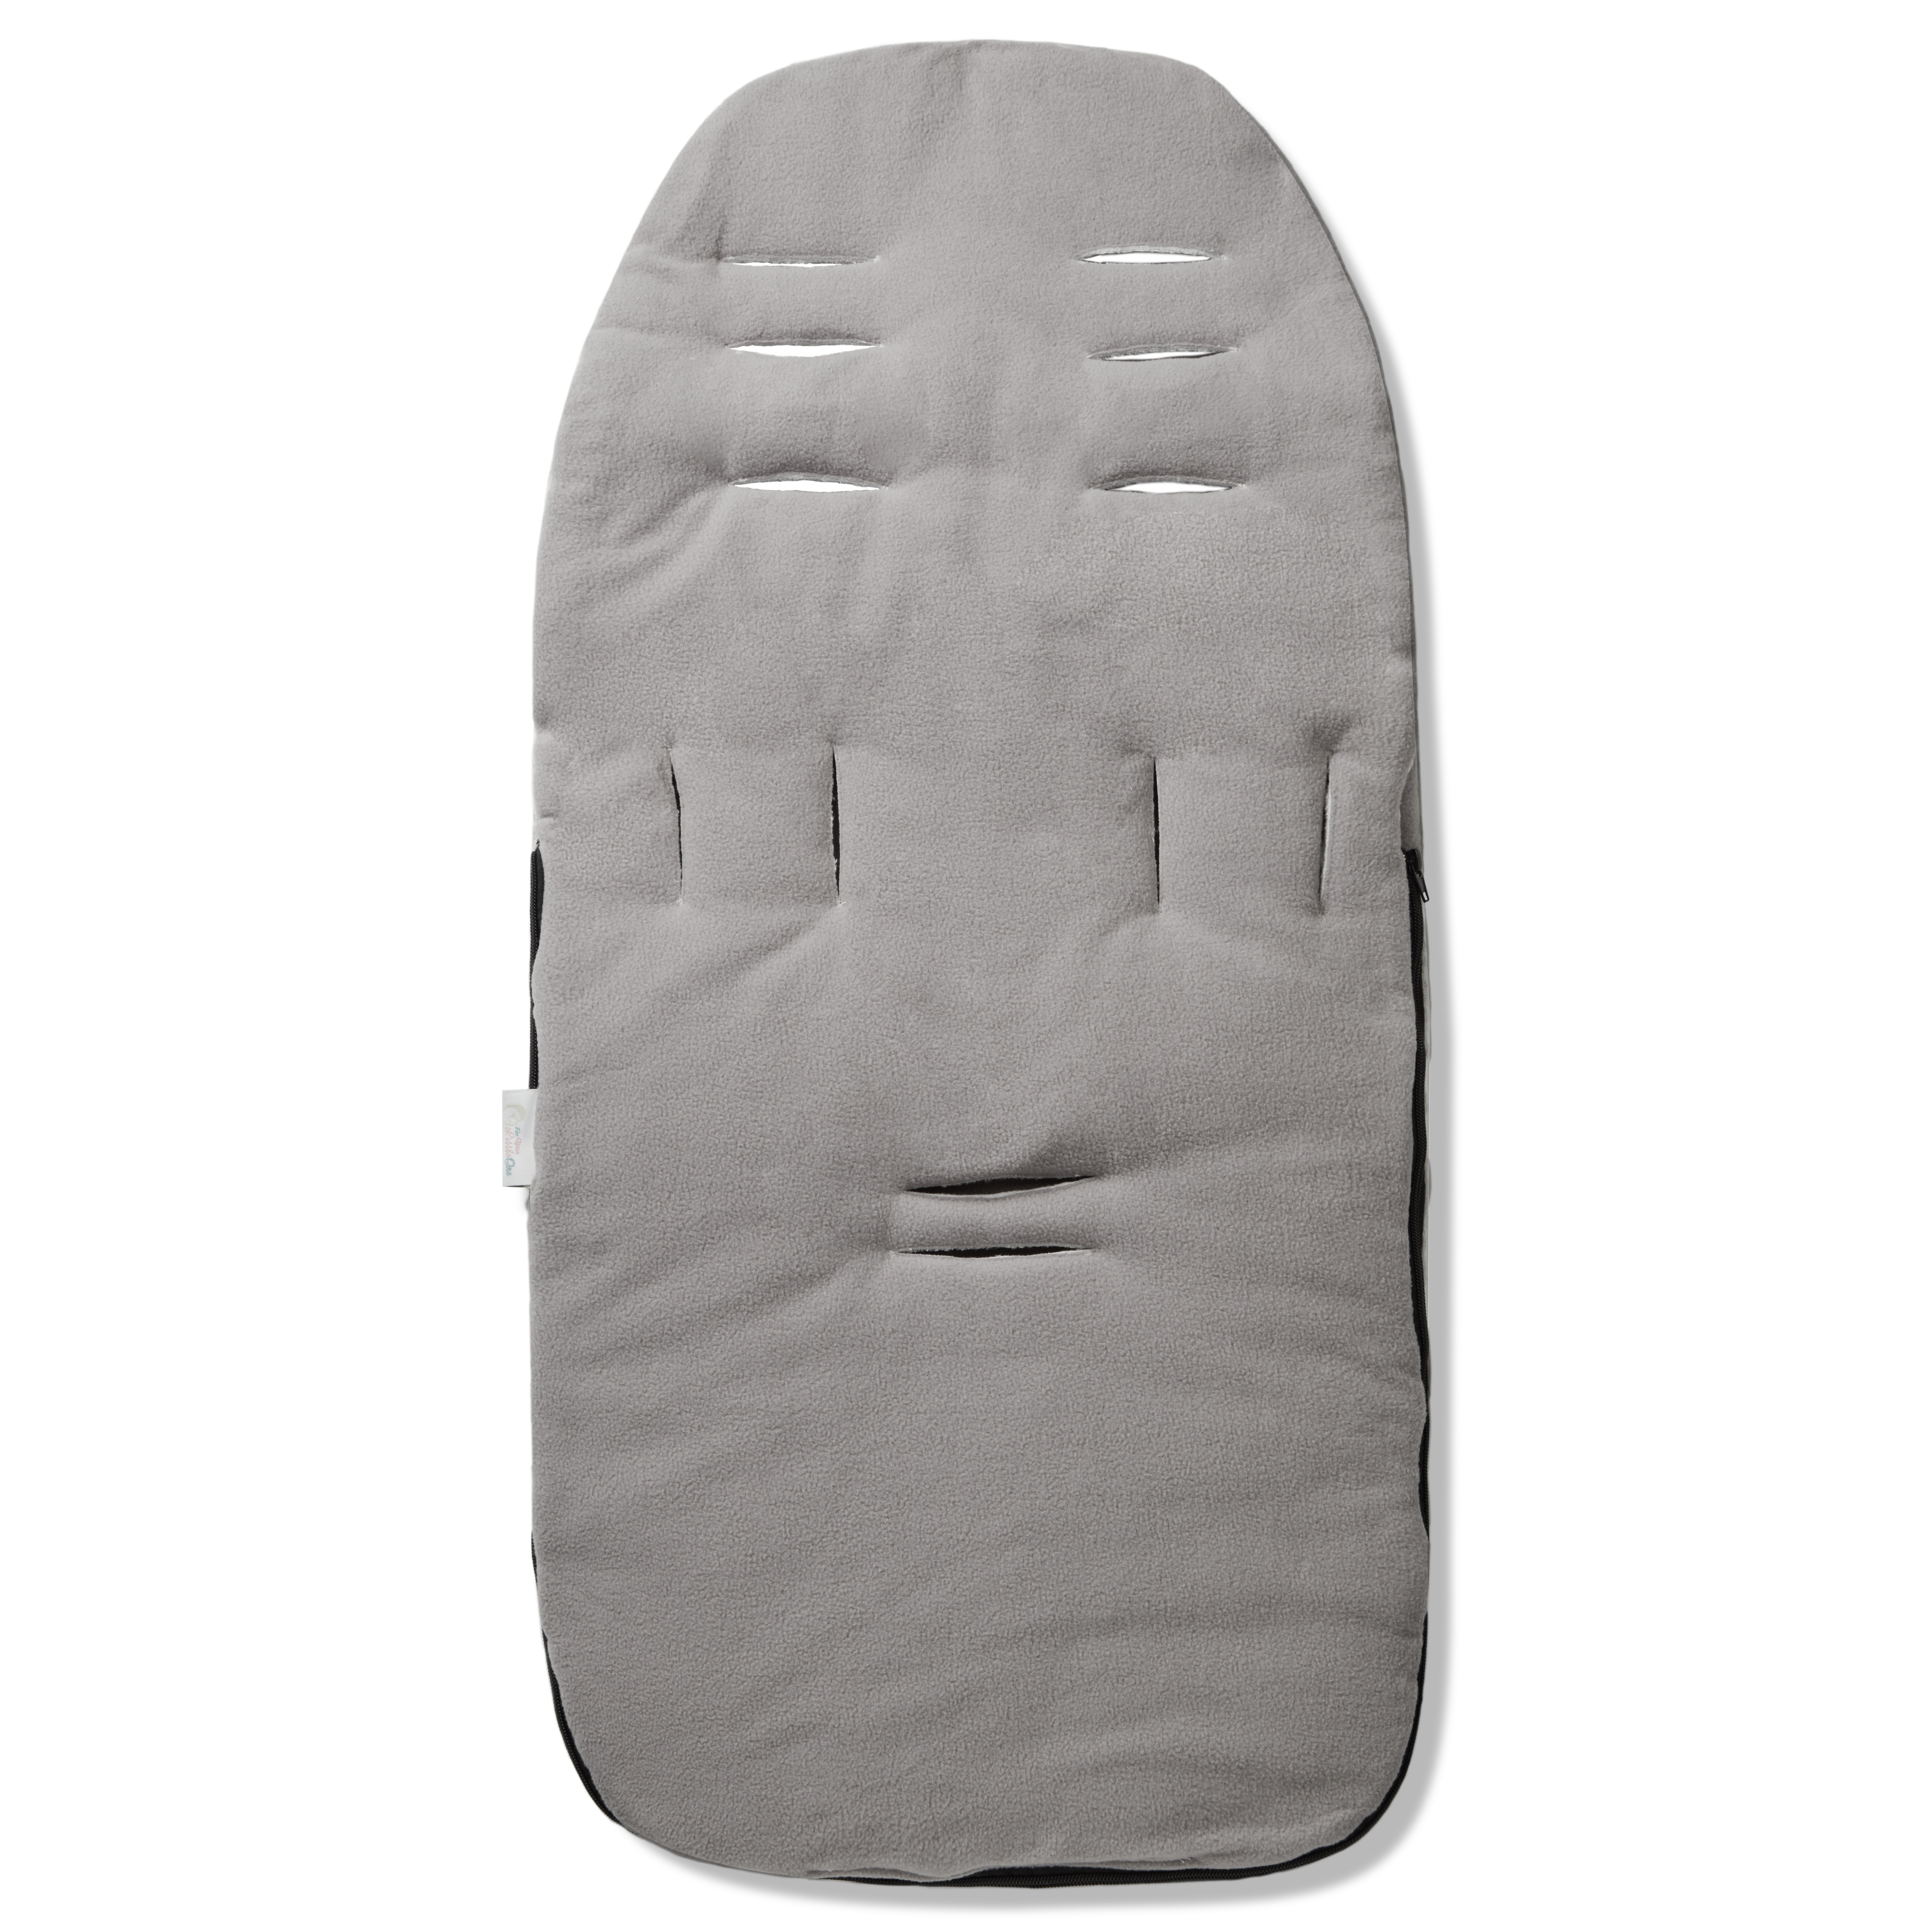 Dimple-Footmuff-Cosy-Toes-Compatible-with-Inglesina thumbnail 7